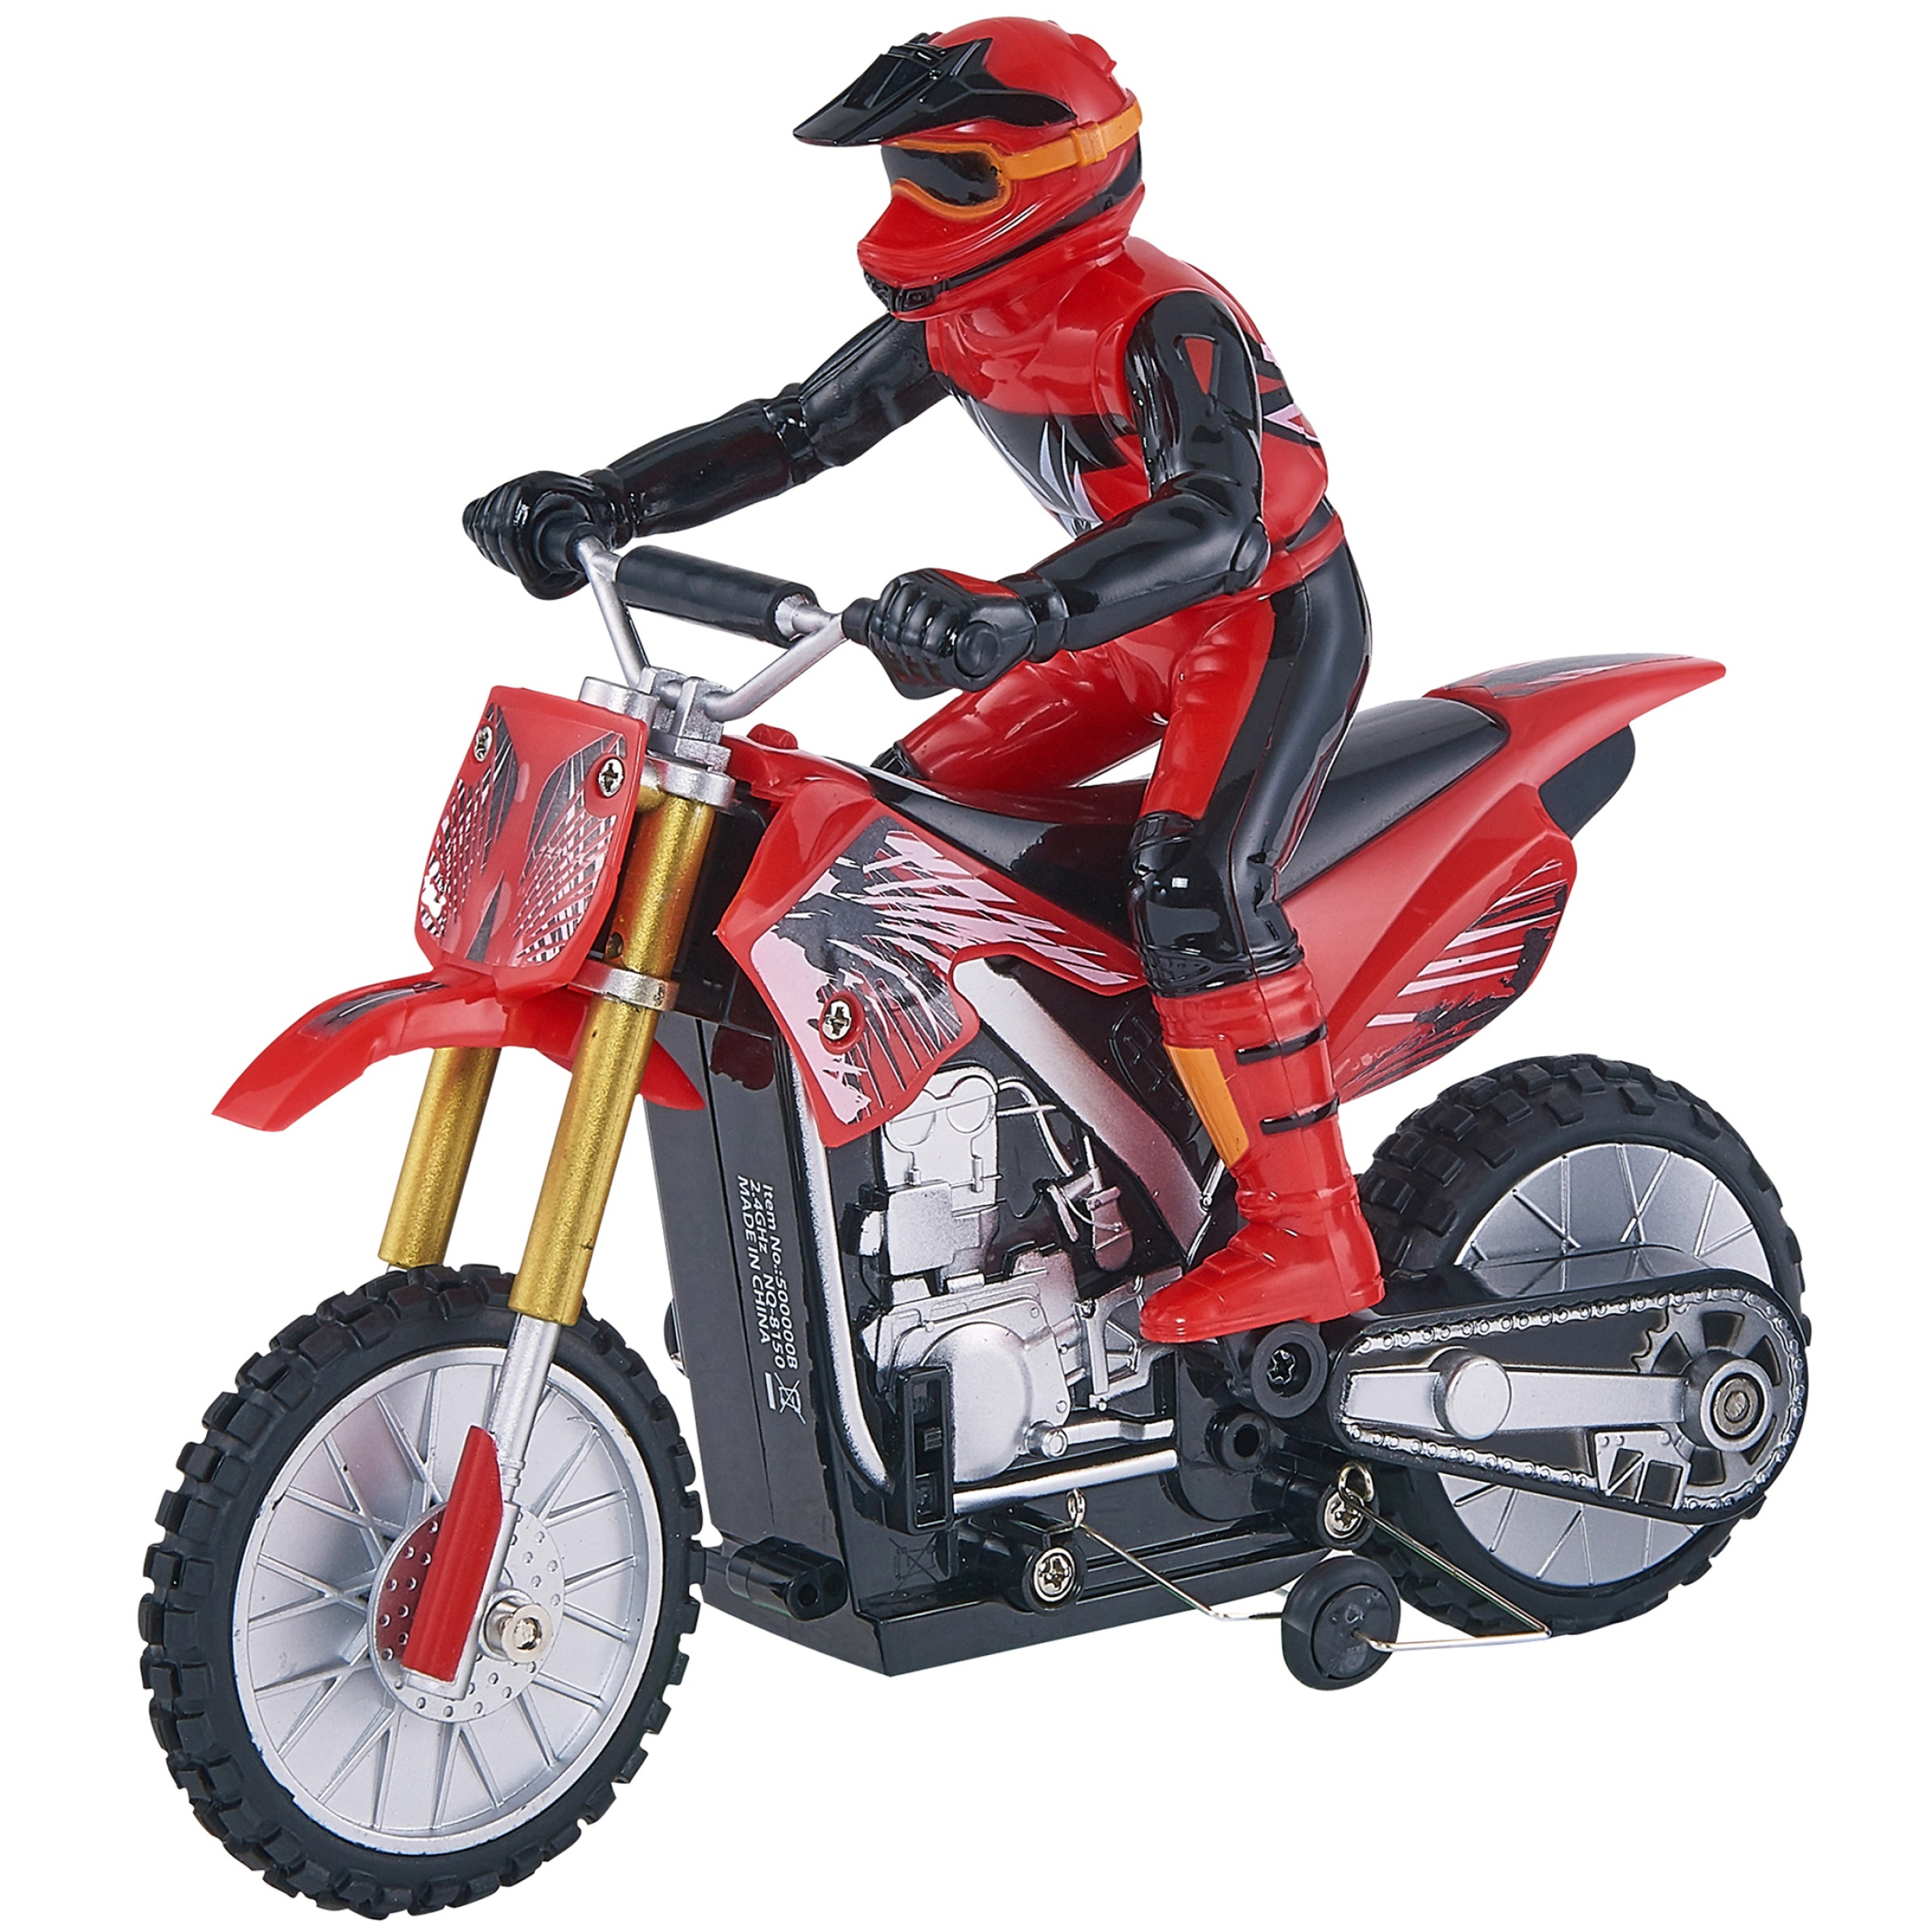 Adventure Force Motocross Bike Radio Controlled Vehicle, Red